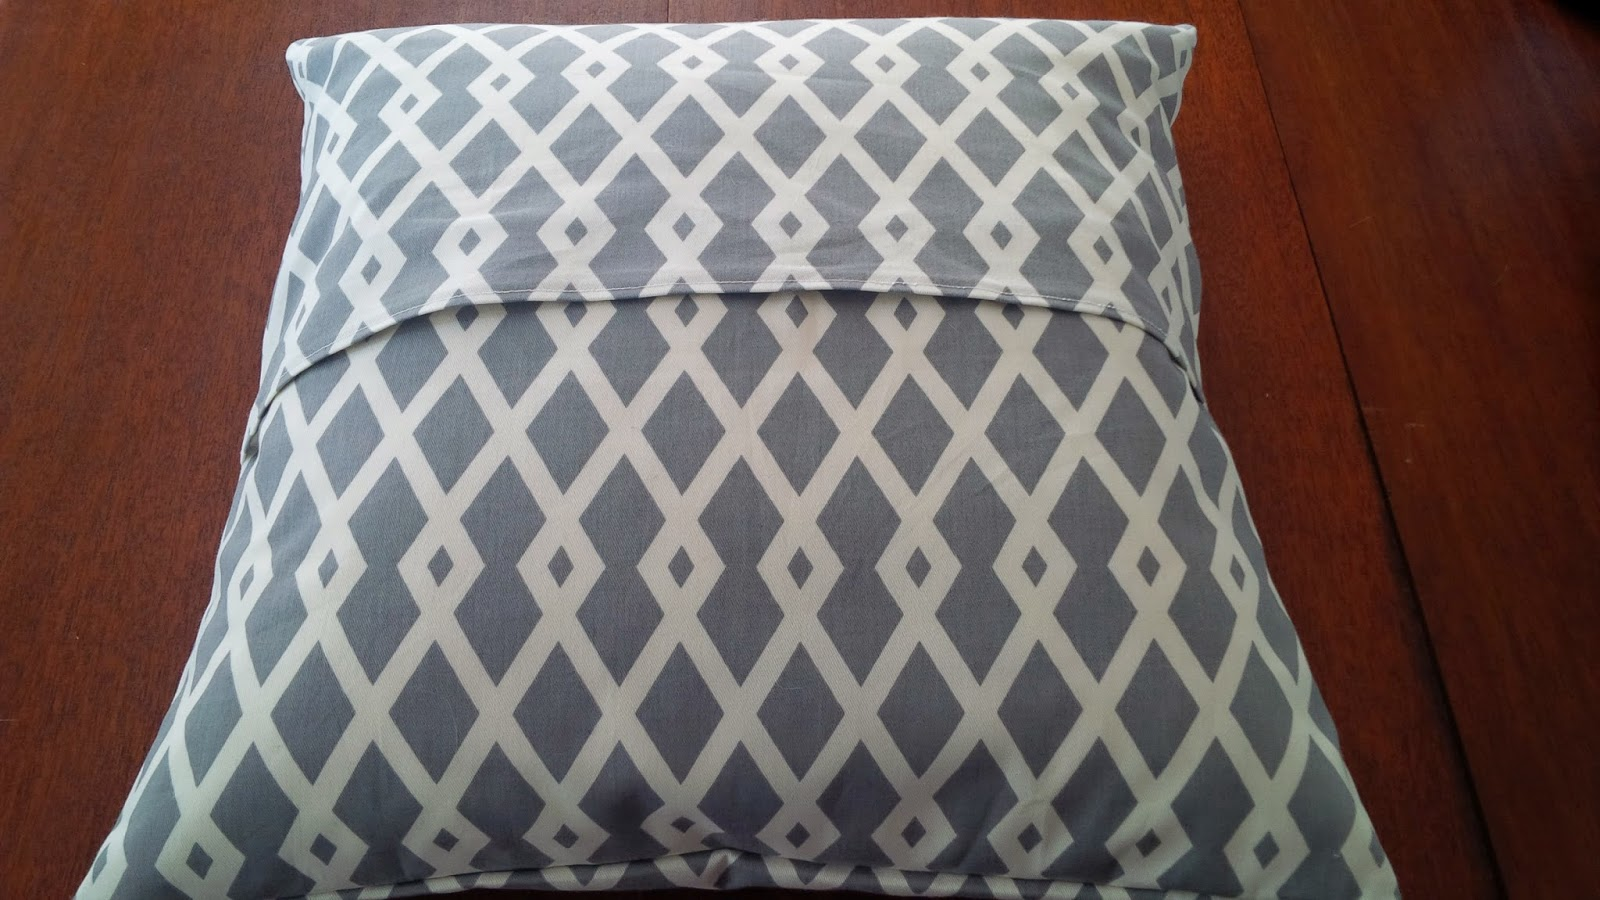 The square front of each pillowcase should be the size of the pillow form plus one inch. For a 20\